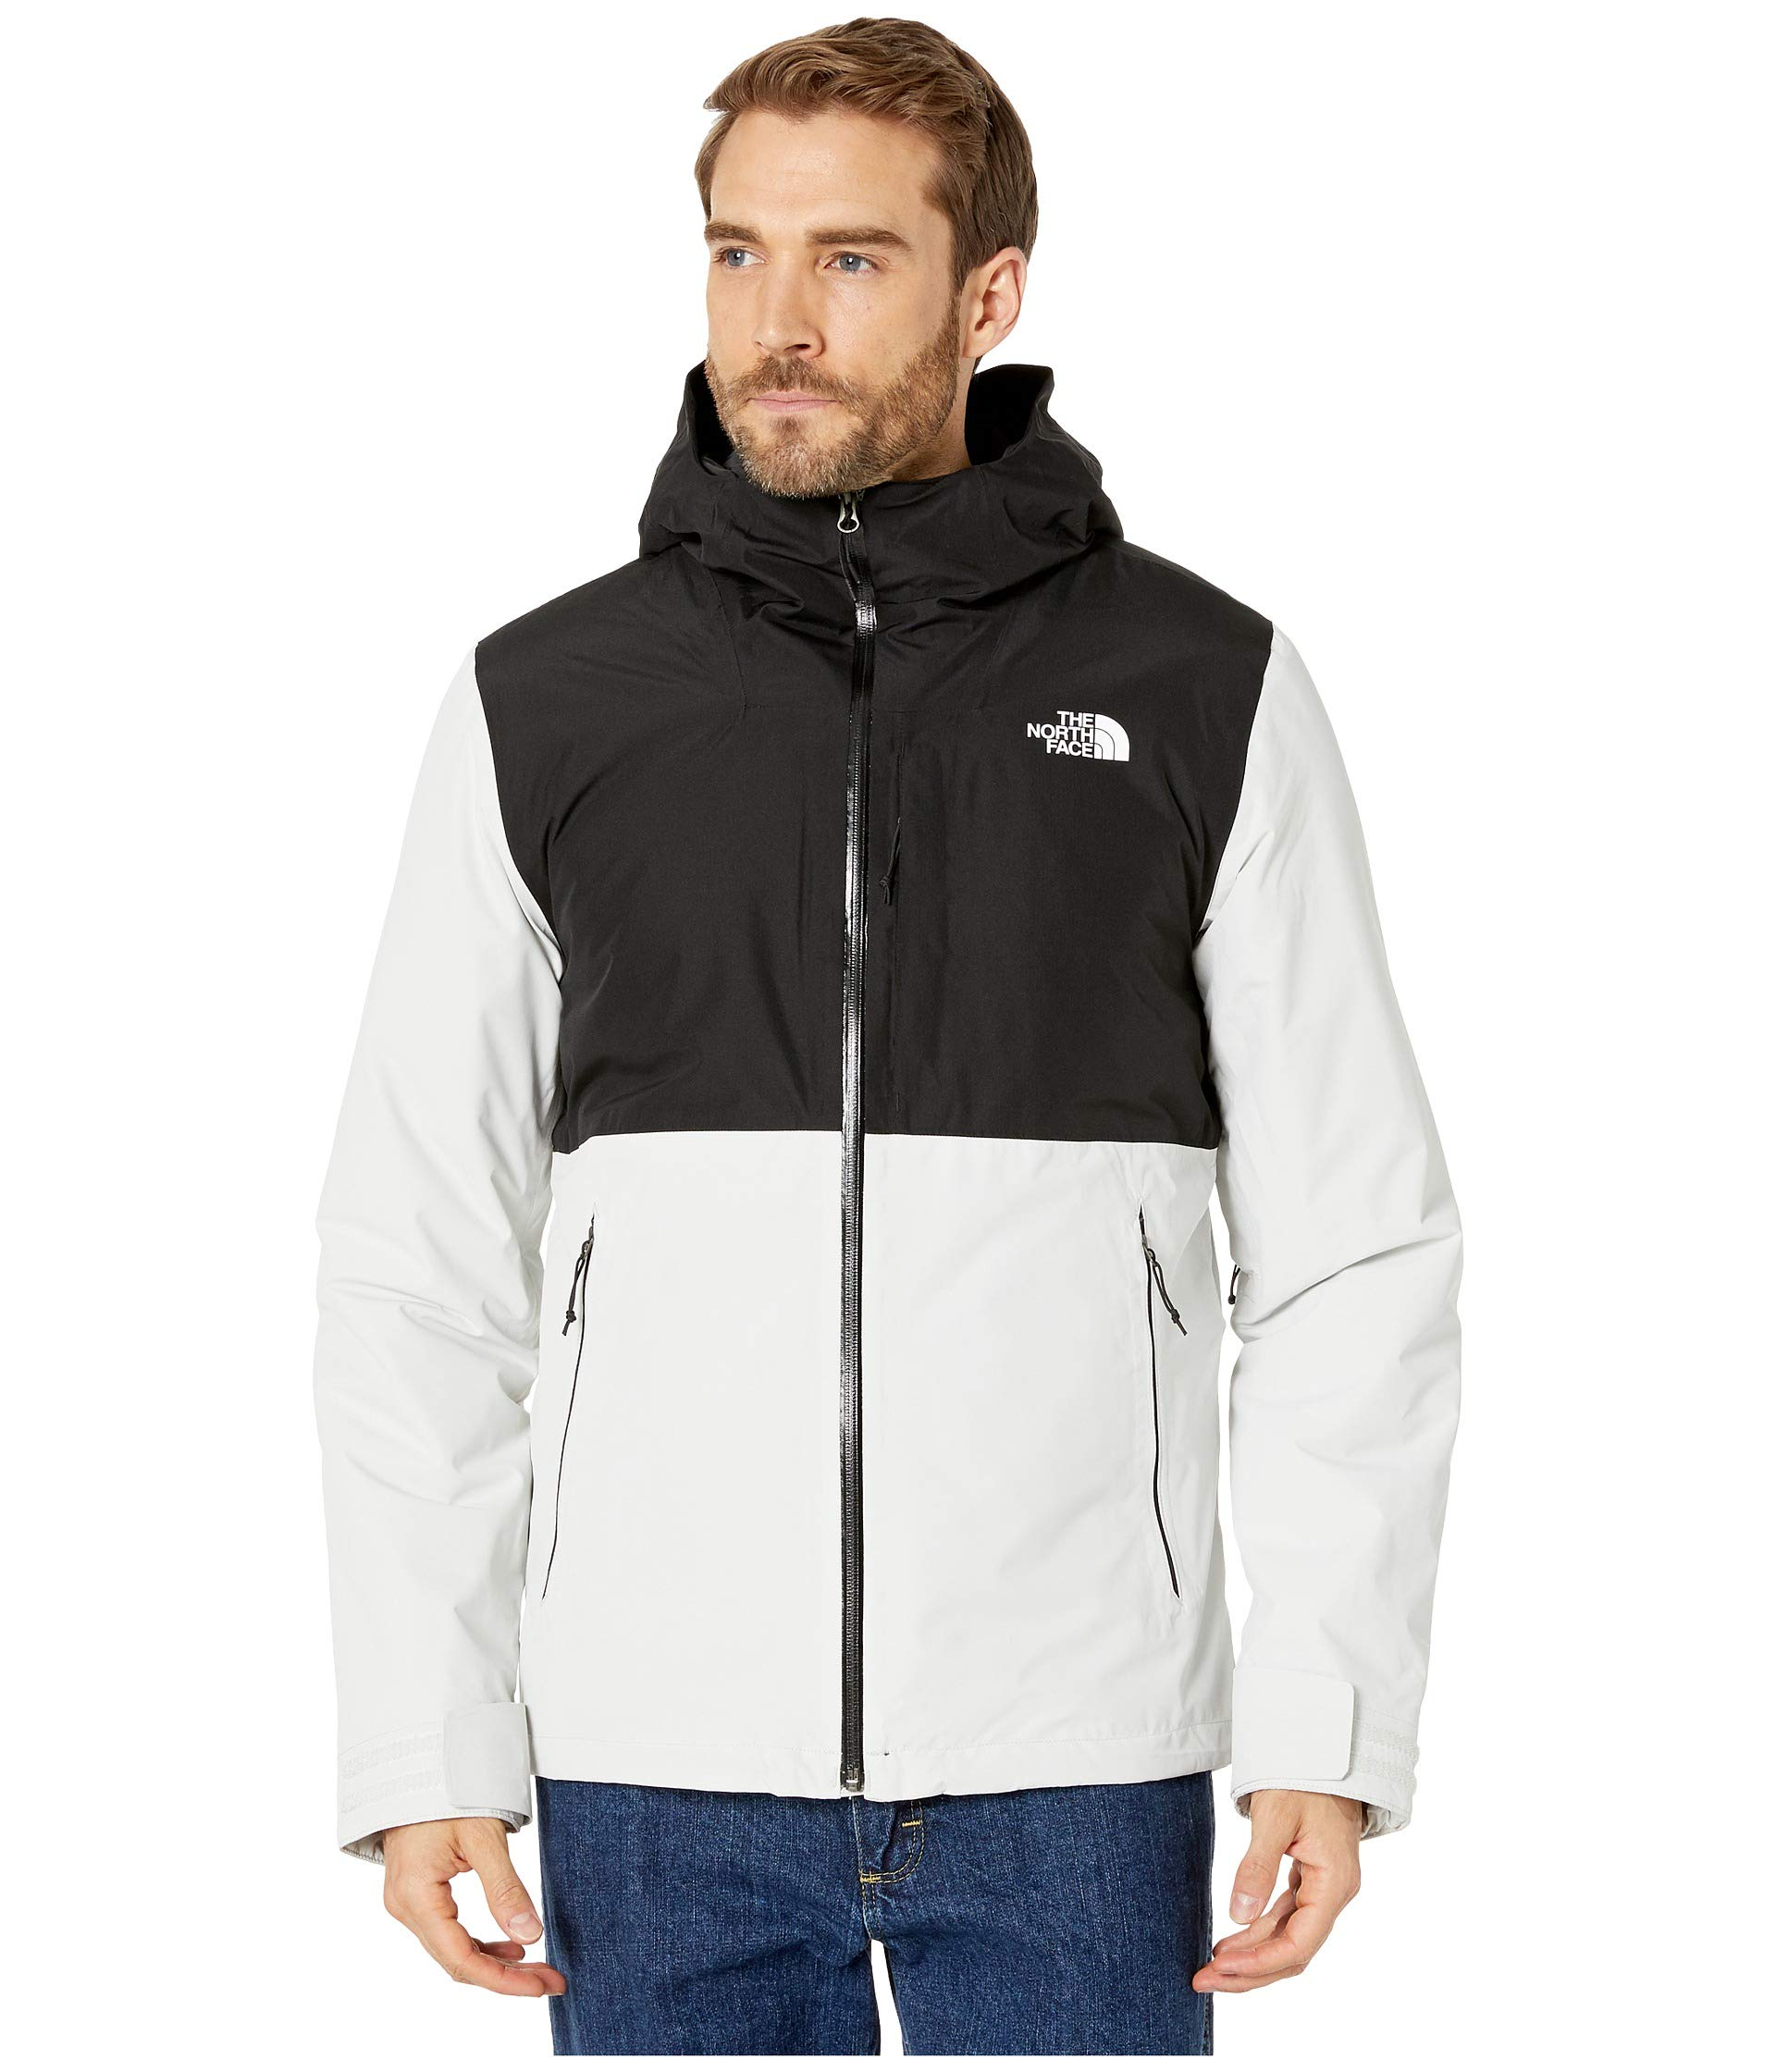 The North Face Men's Inlux Insulated Jacket by The North Face